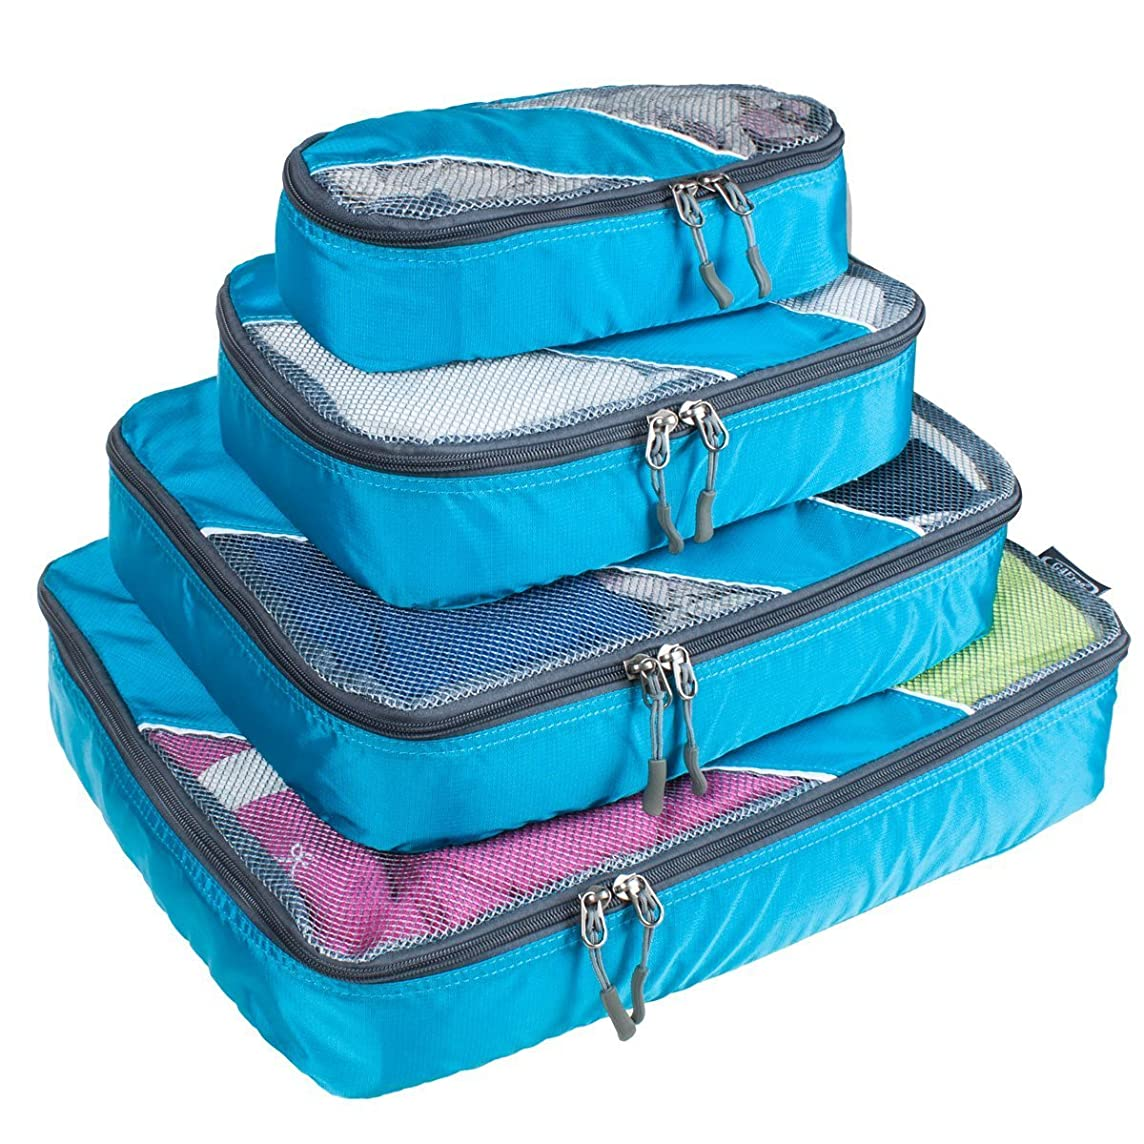 G4Free 4Pcs/6Pcs Set Packing Cubes, Travel Luggage Backpack Packing Organizers with Different Set